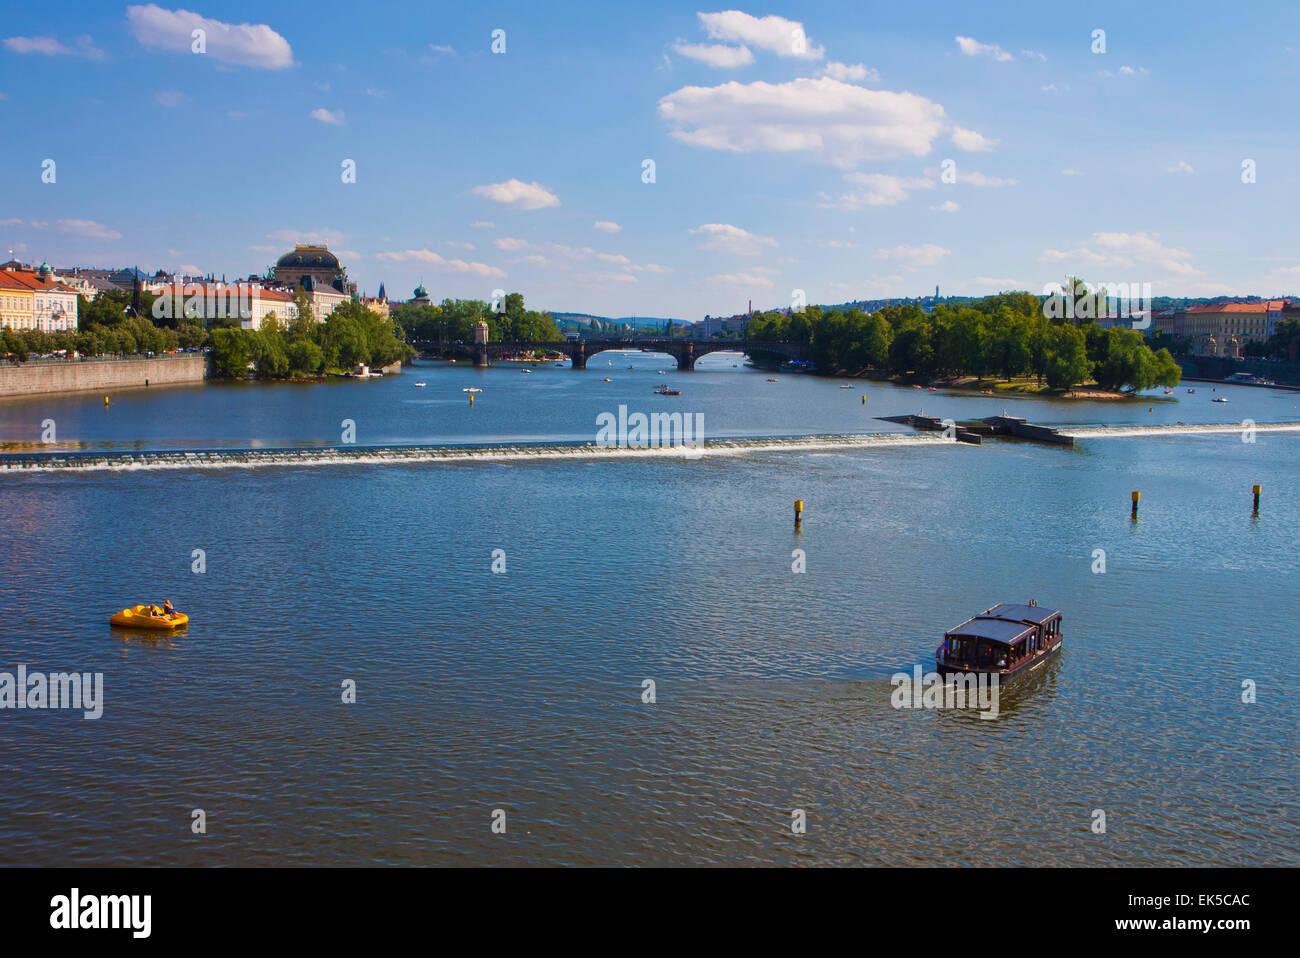 River Moldau at Prague: many small boats  cruise its water and  offer to the tourists  a beautiful view of the city - Stock Image